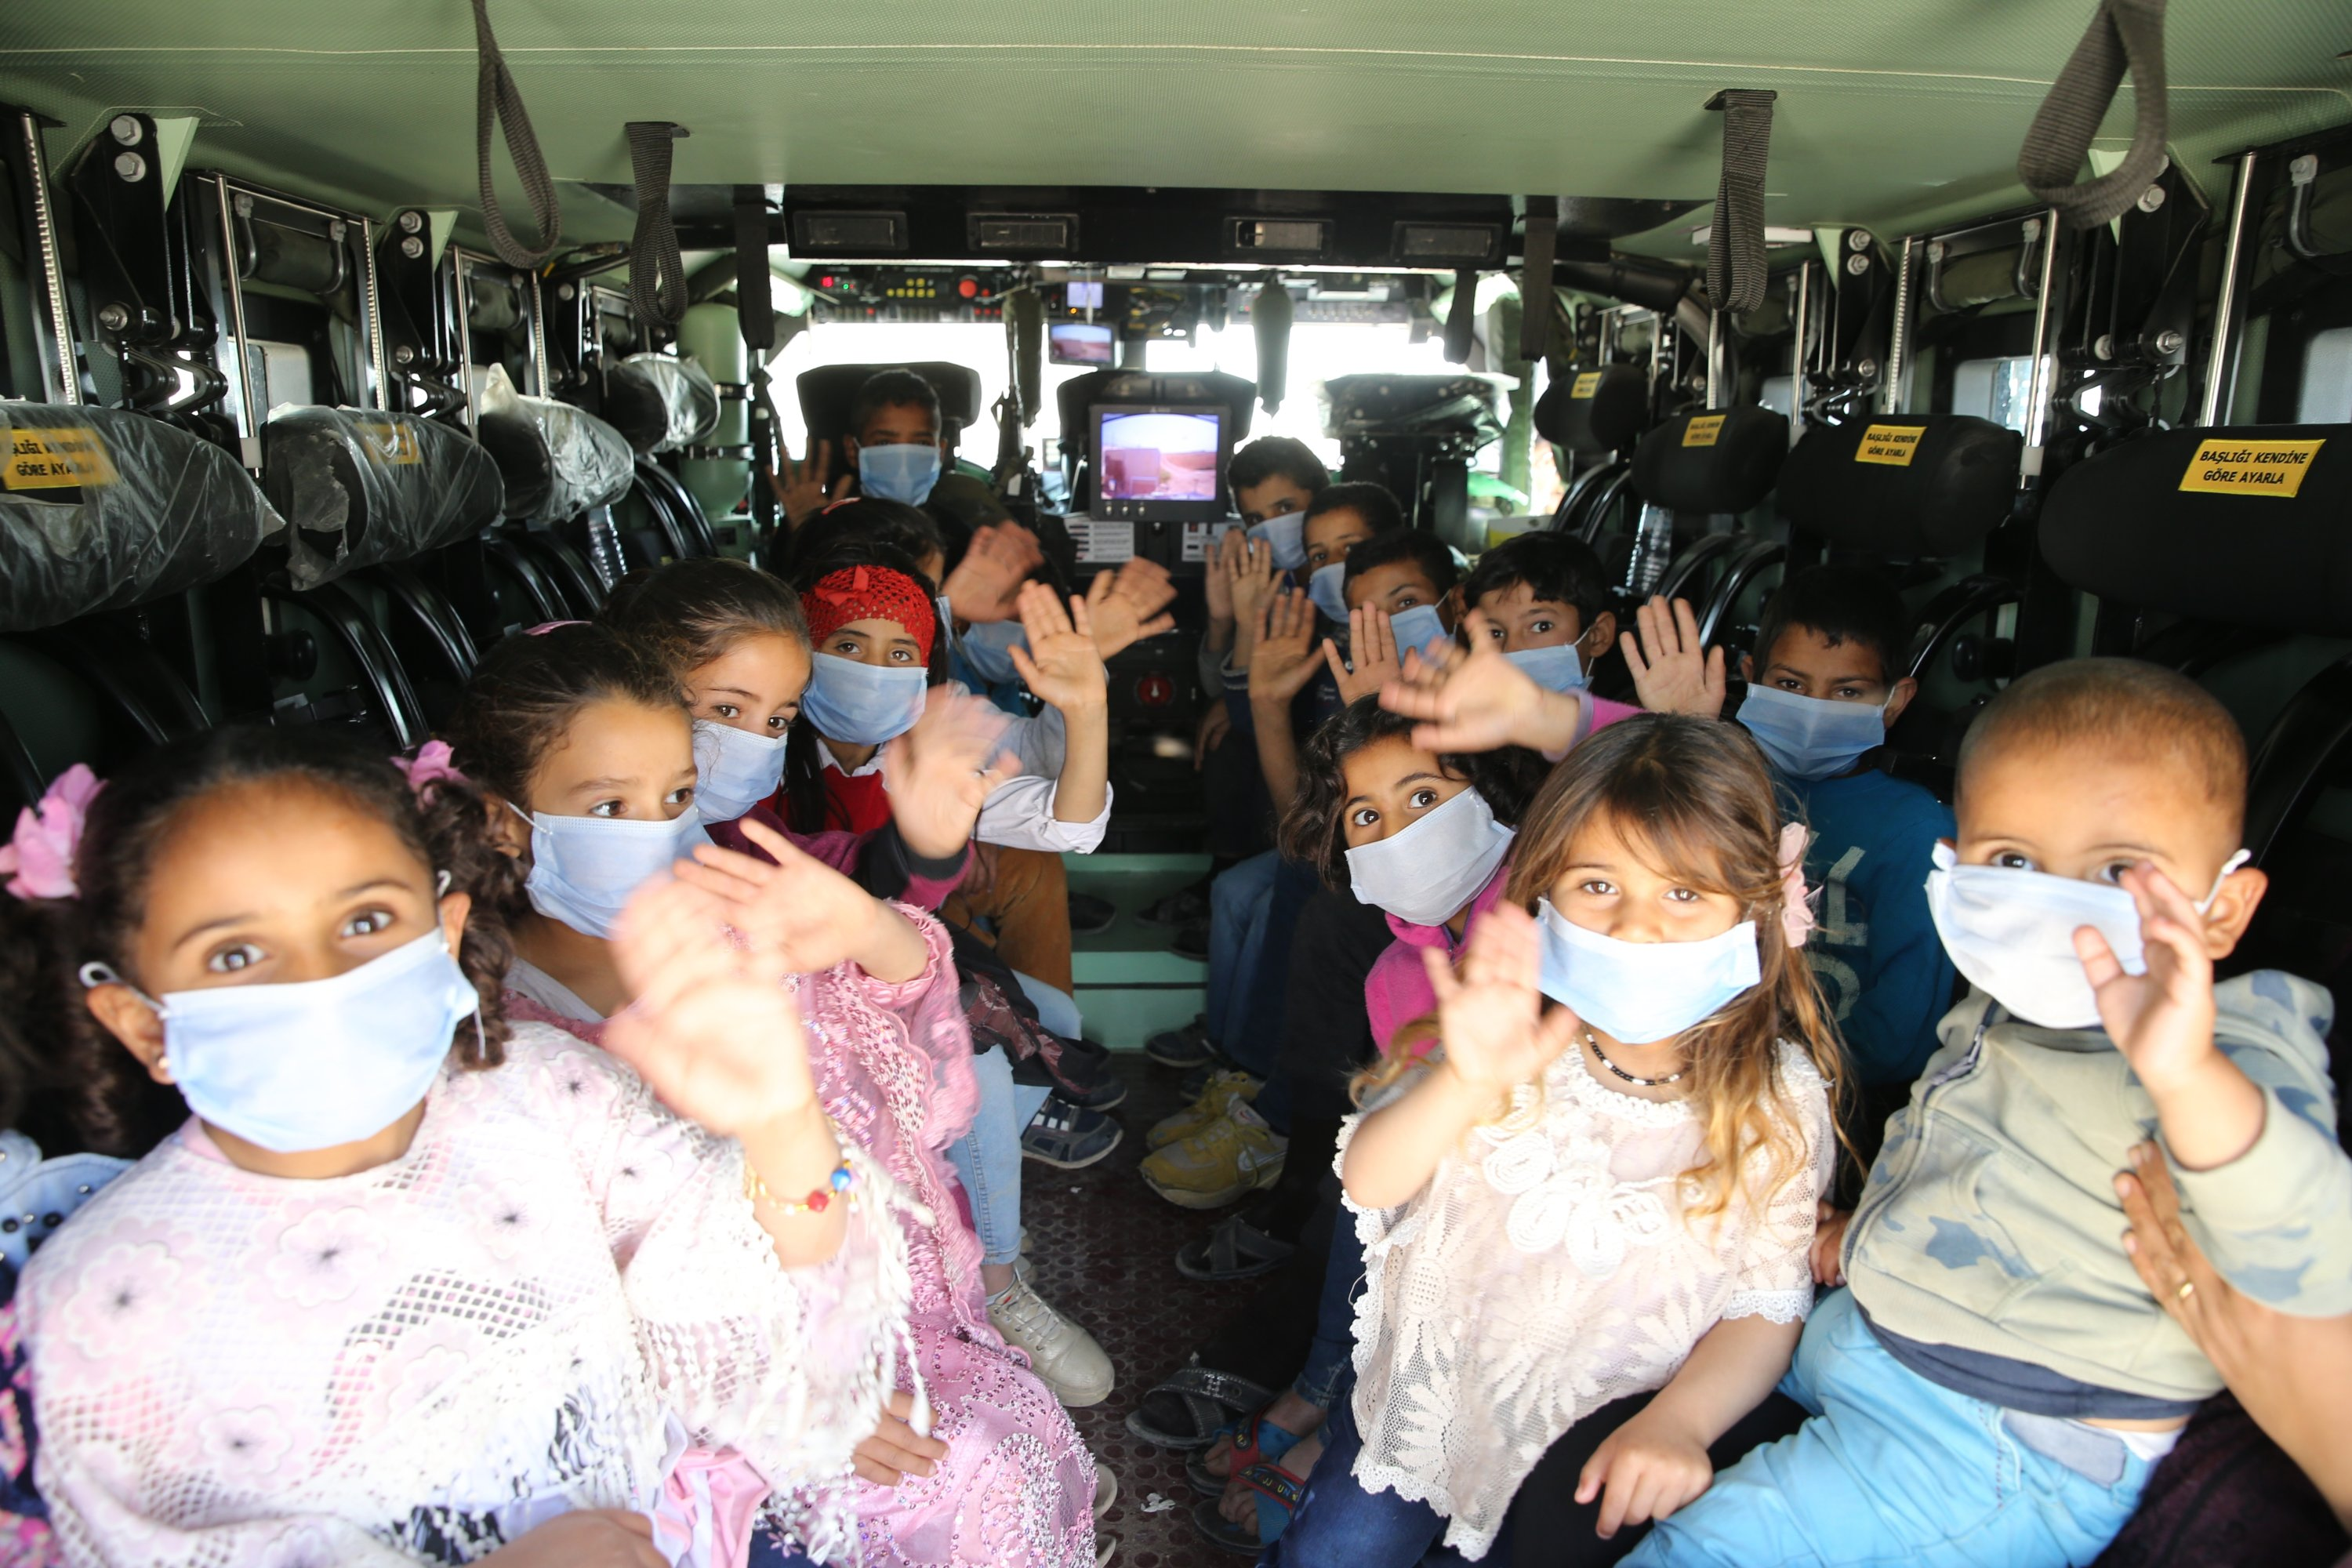 Syrian children in a Turkish armored vehicle on their way to Mardin, Turkey, April 28, 2021. (AA)